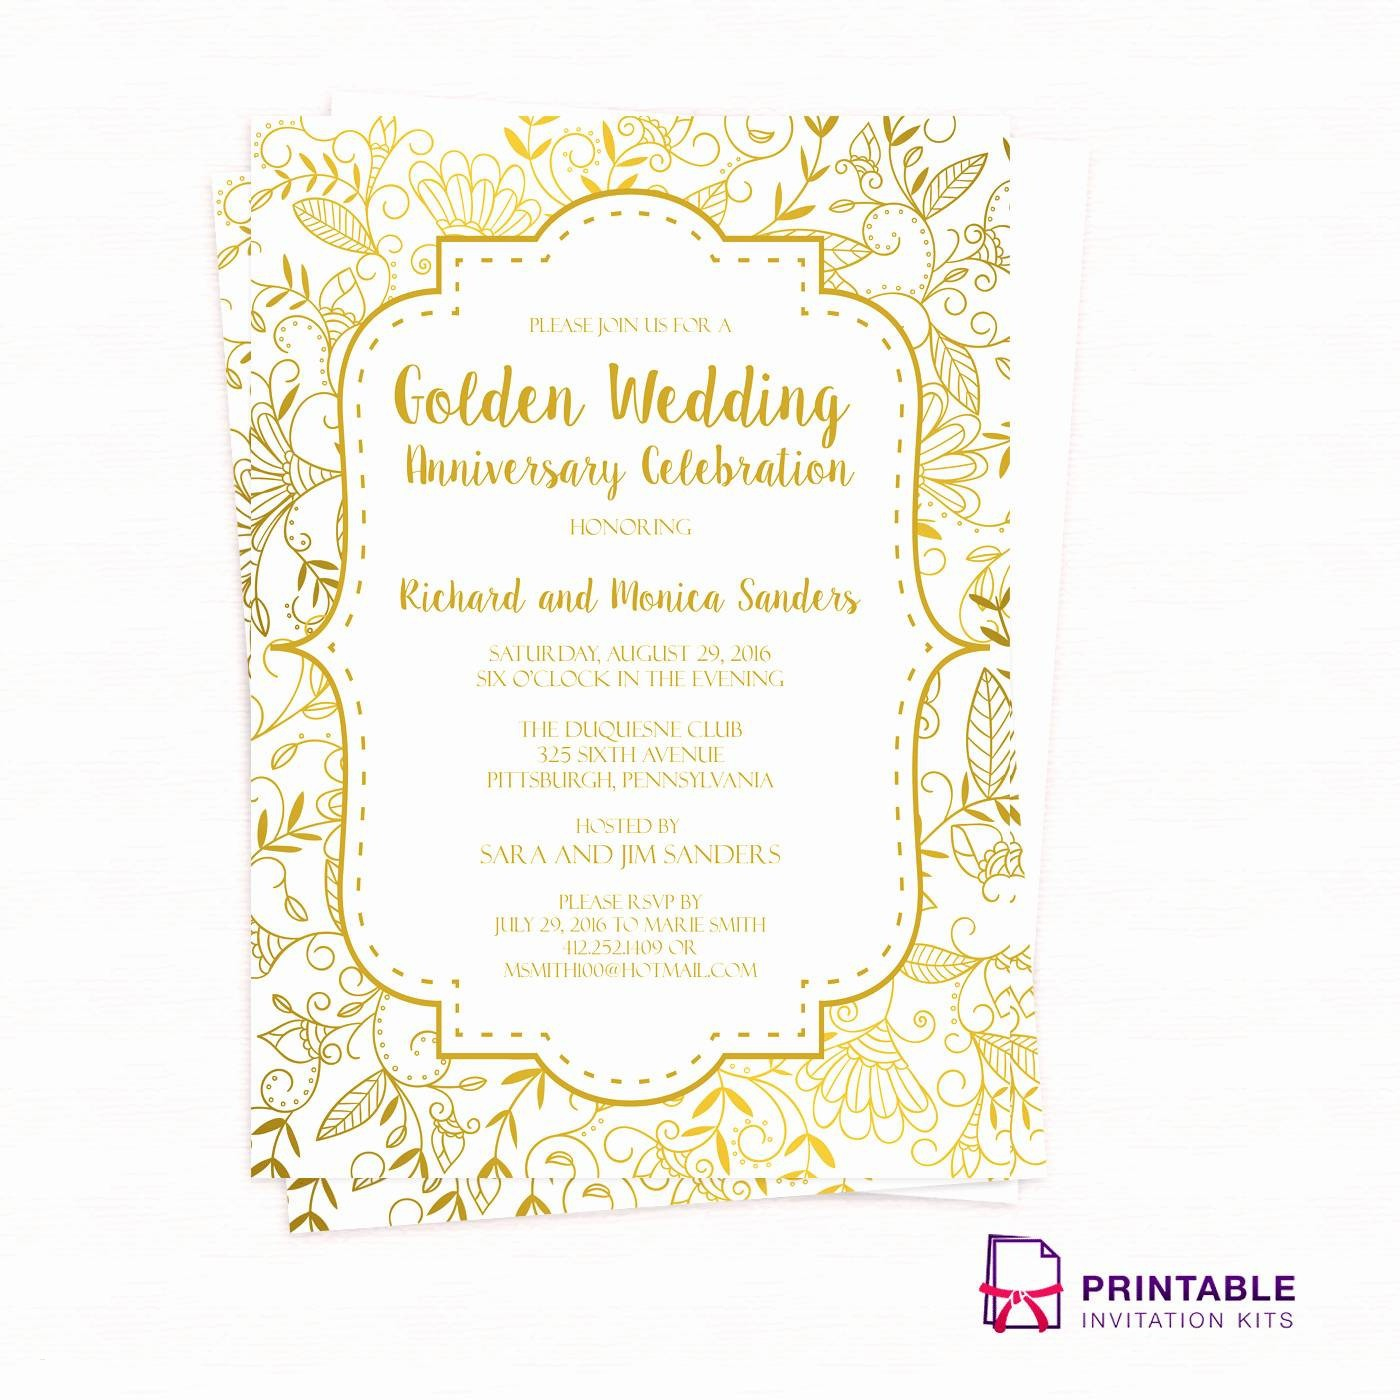 Printable 40Th Anniversary Invitations - Letter.bestkitchenview.co - Free Printable 60Th Wedding Anniversary Invitations